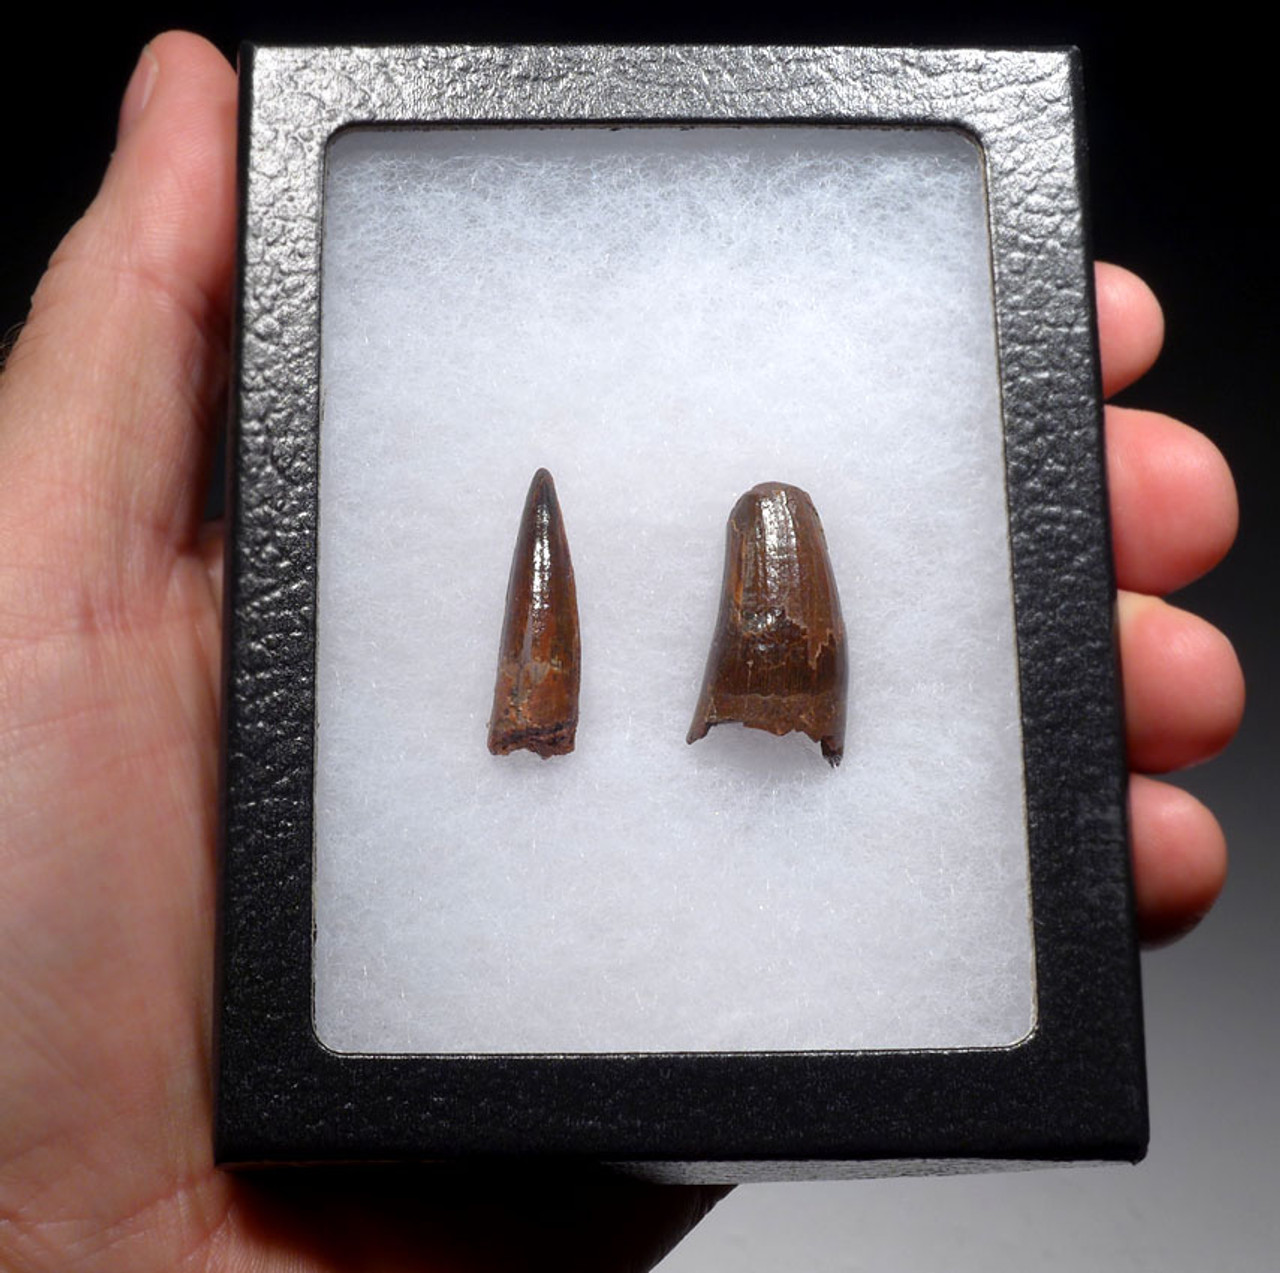 DT5-314 - SET OF TWO PREMIUM SPINOSAURUS ADULT AND BABY DINOSAUR FOSSIL TEETH